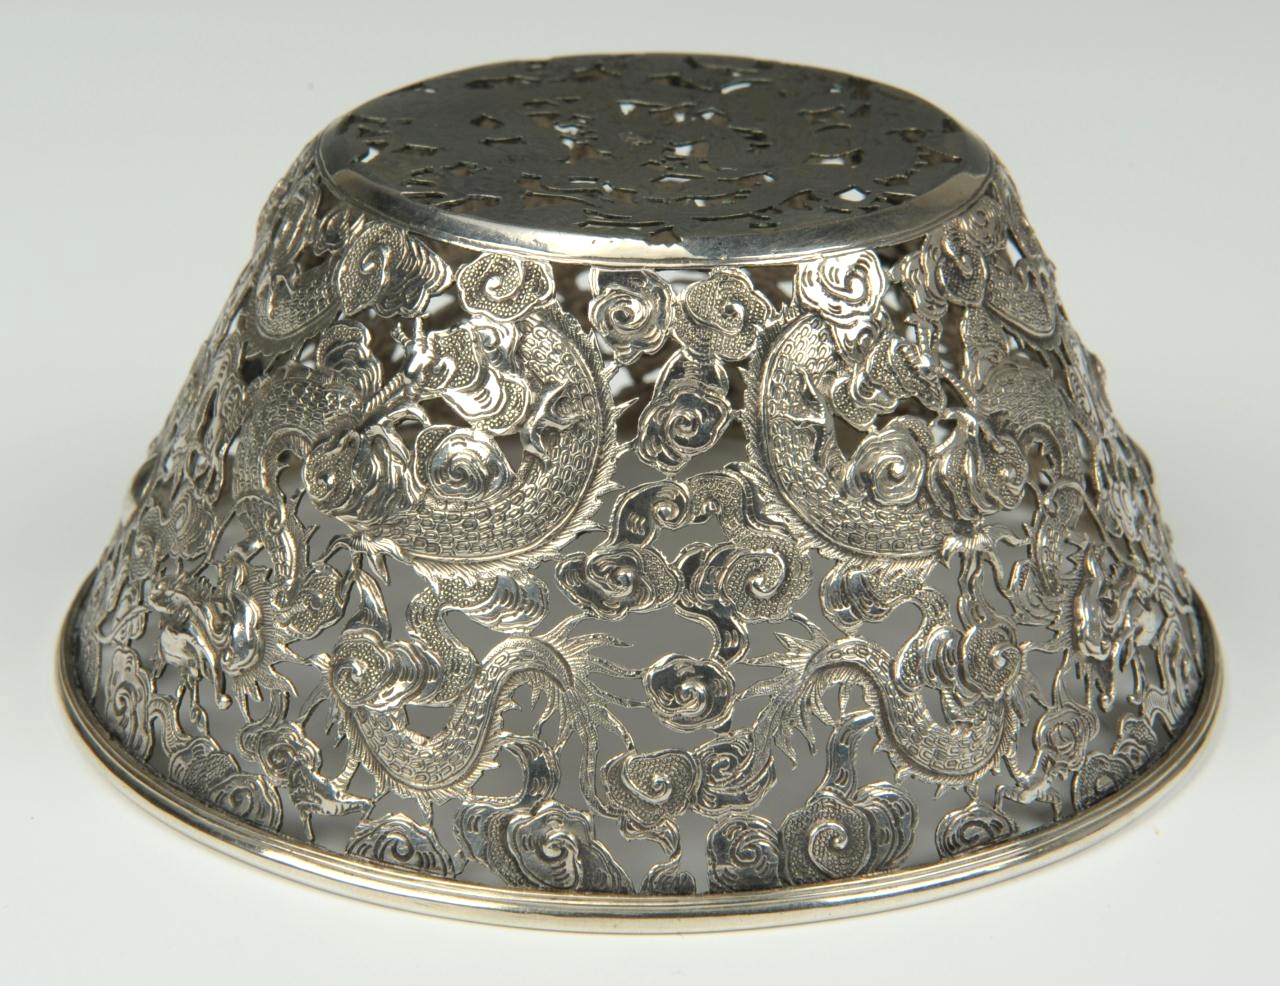 Lot 1: Chinese Export Silver Bowl, Dragon Design